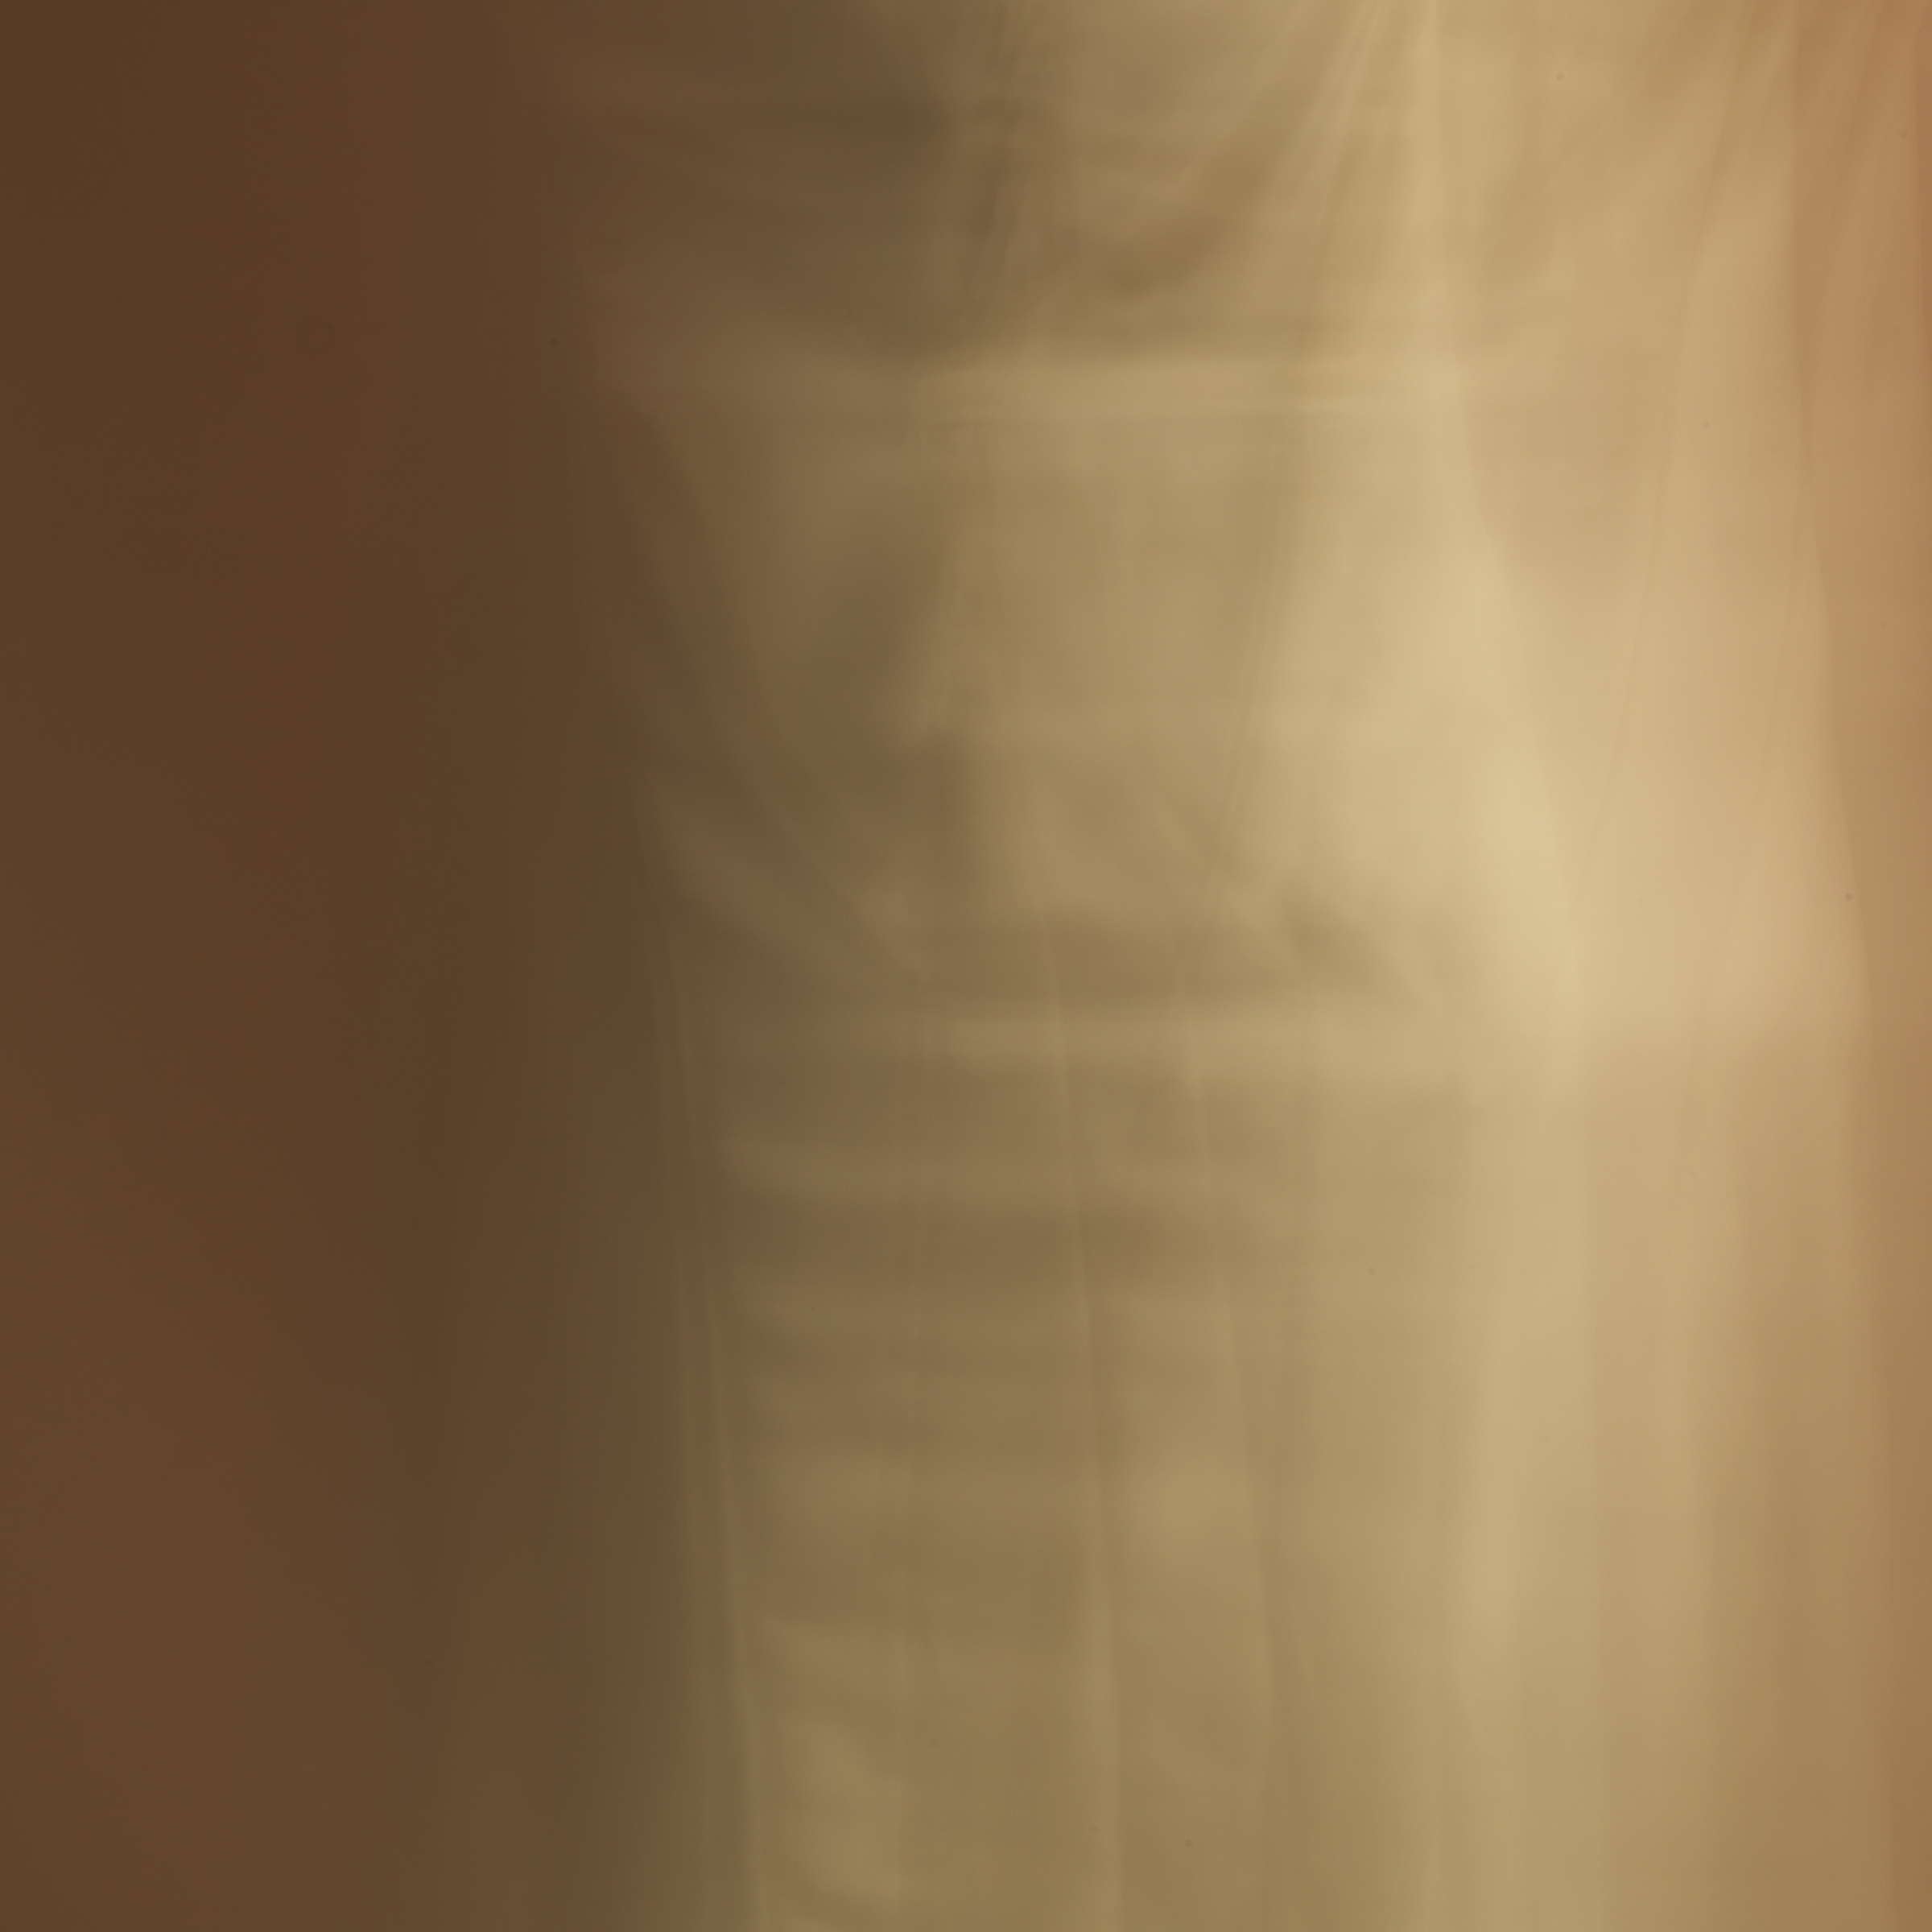 poet's pen, 5, 2014  20 x 20 in. Archival pigment print on Canson paper Edition of 5